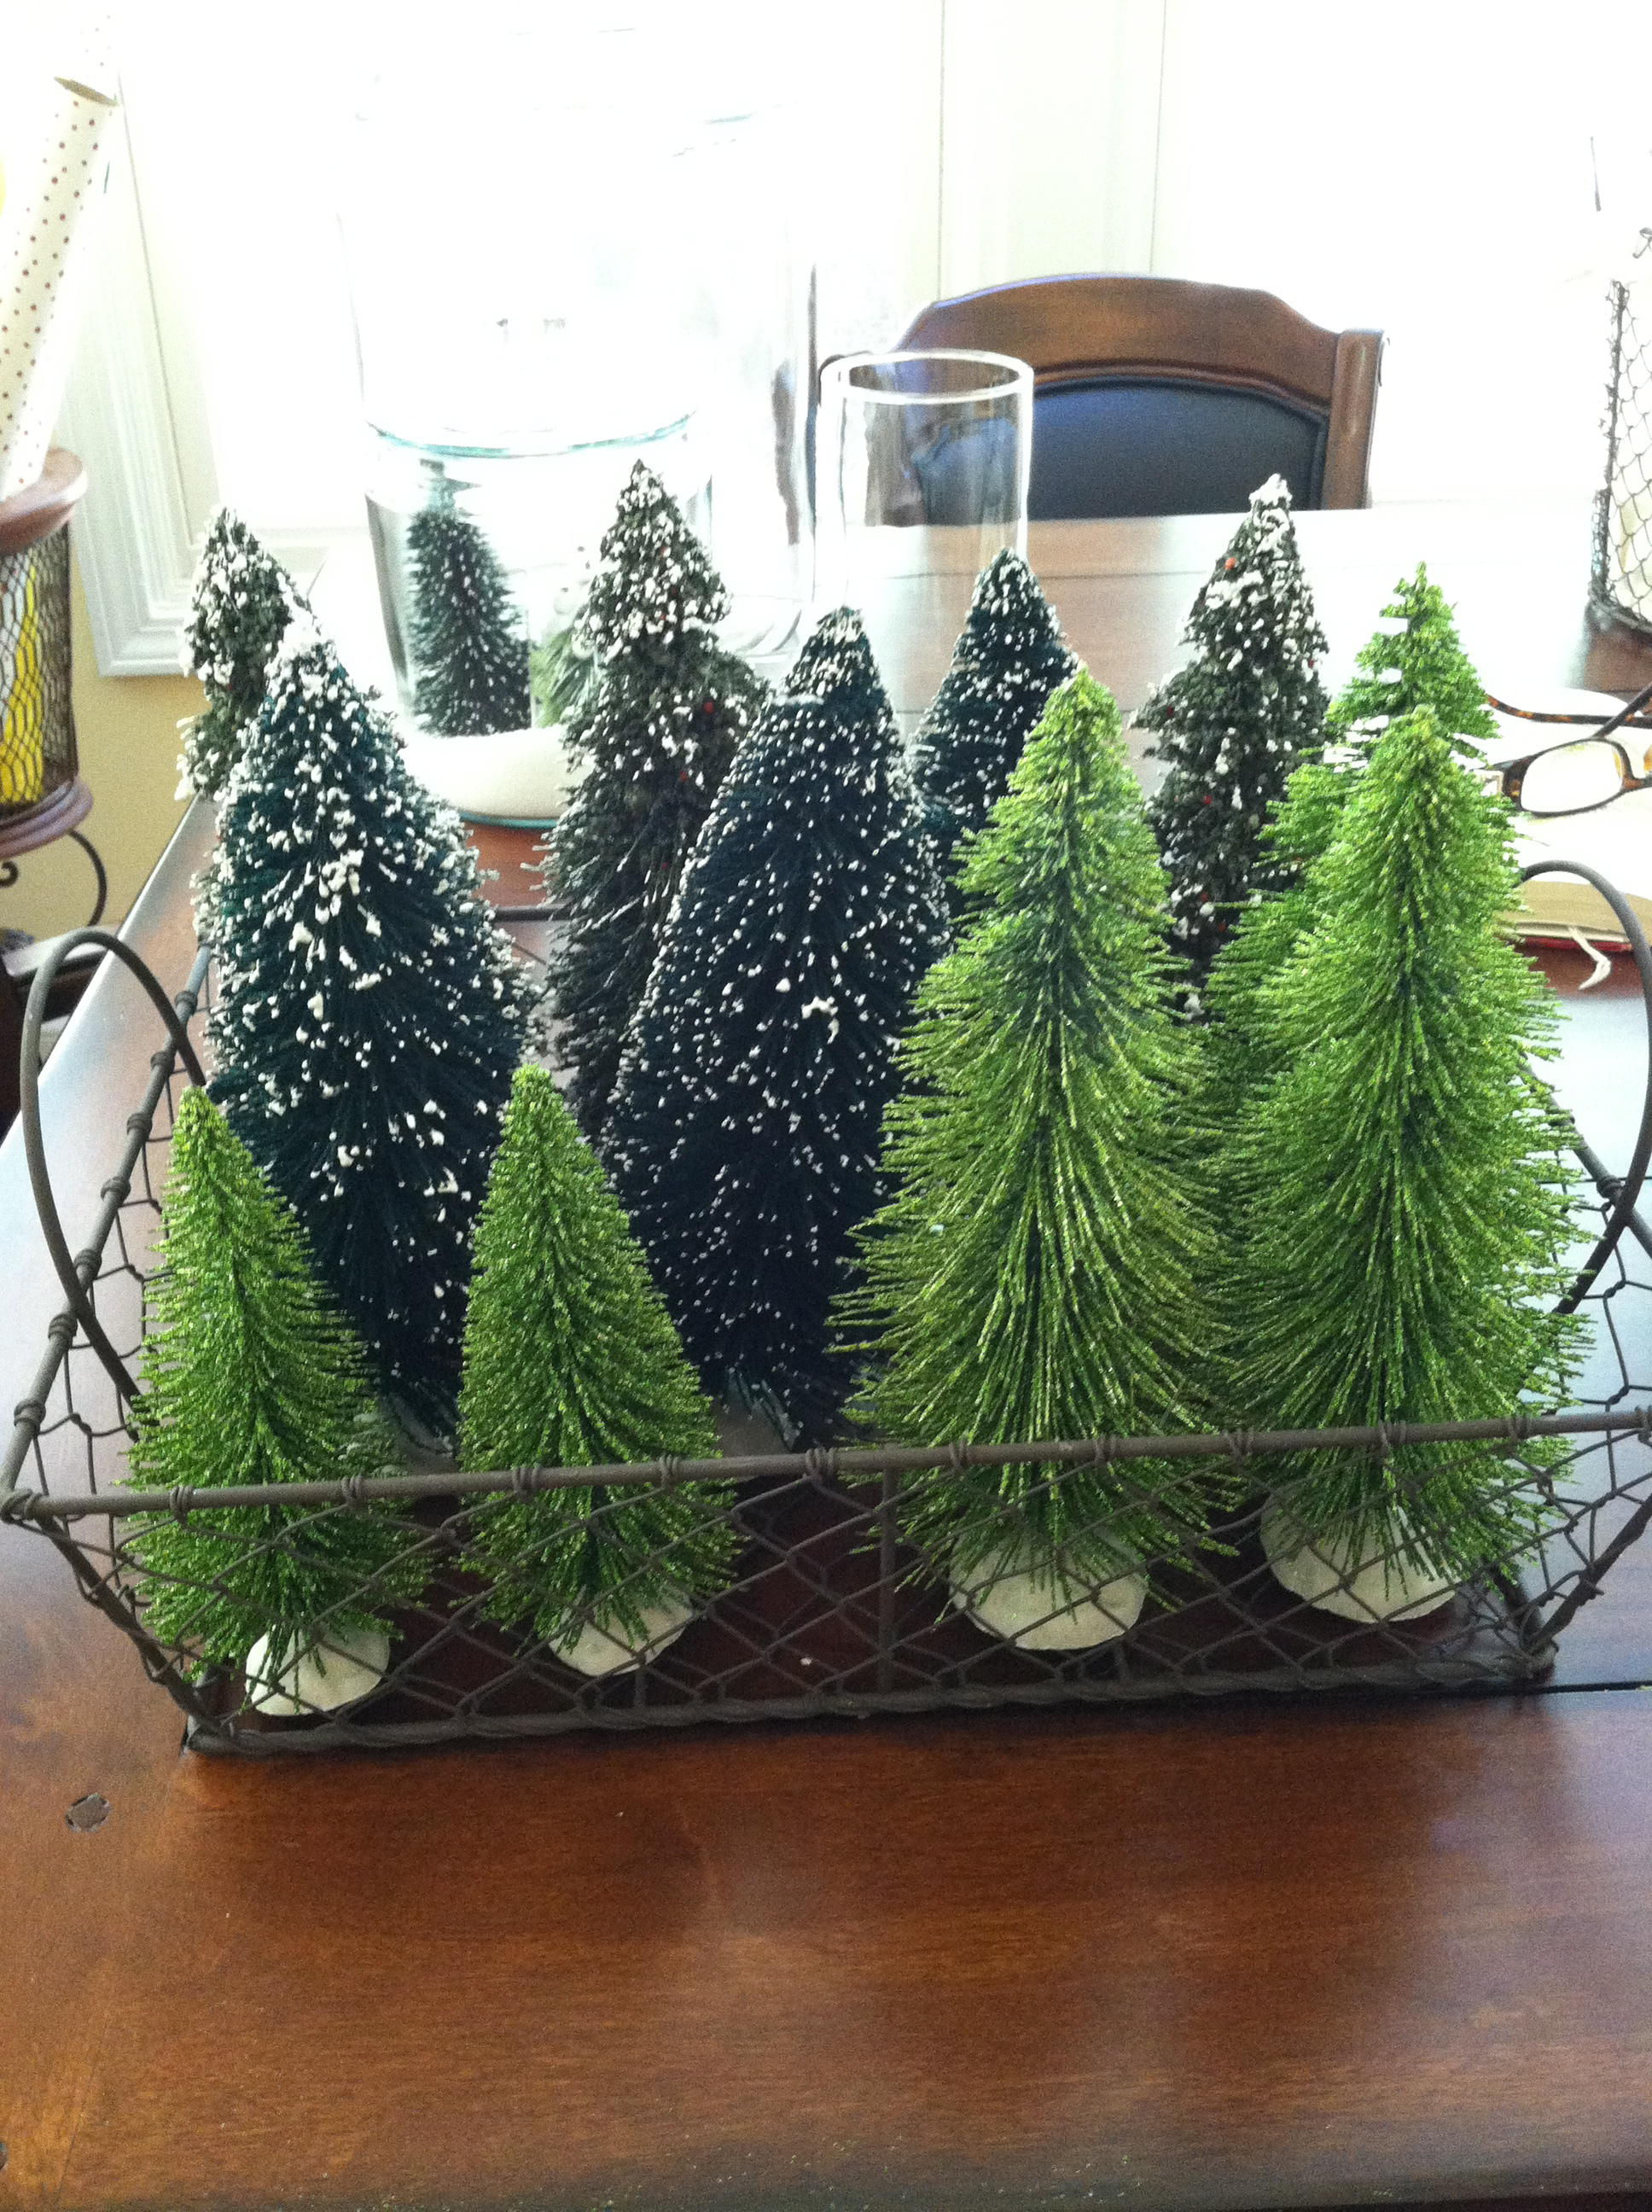 Place Small Christmas Trees In Wired Bread Basket And On Your Kitchen Island Or Side Table